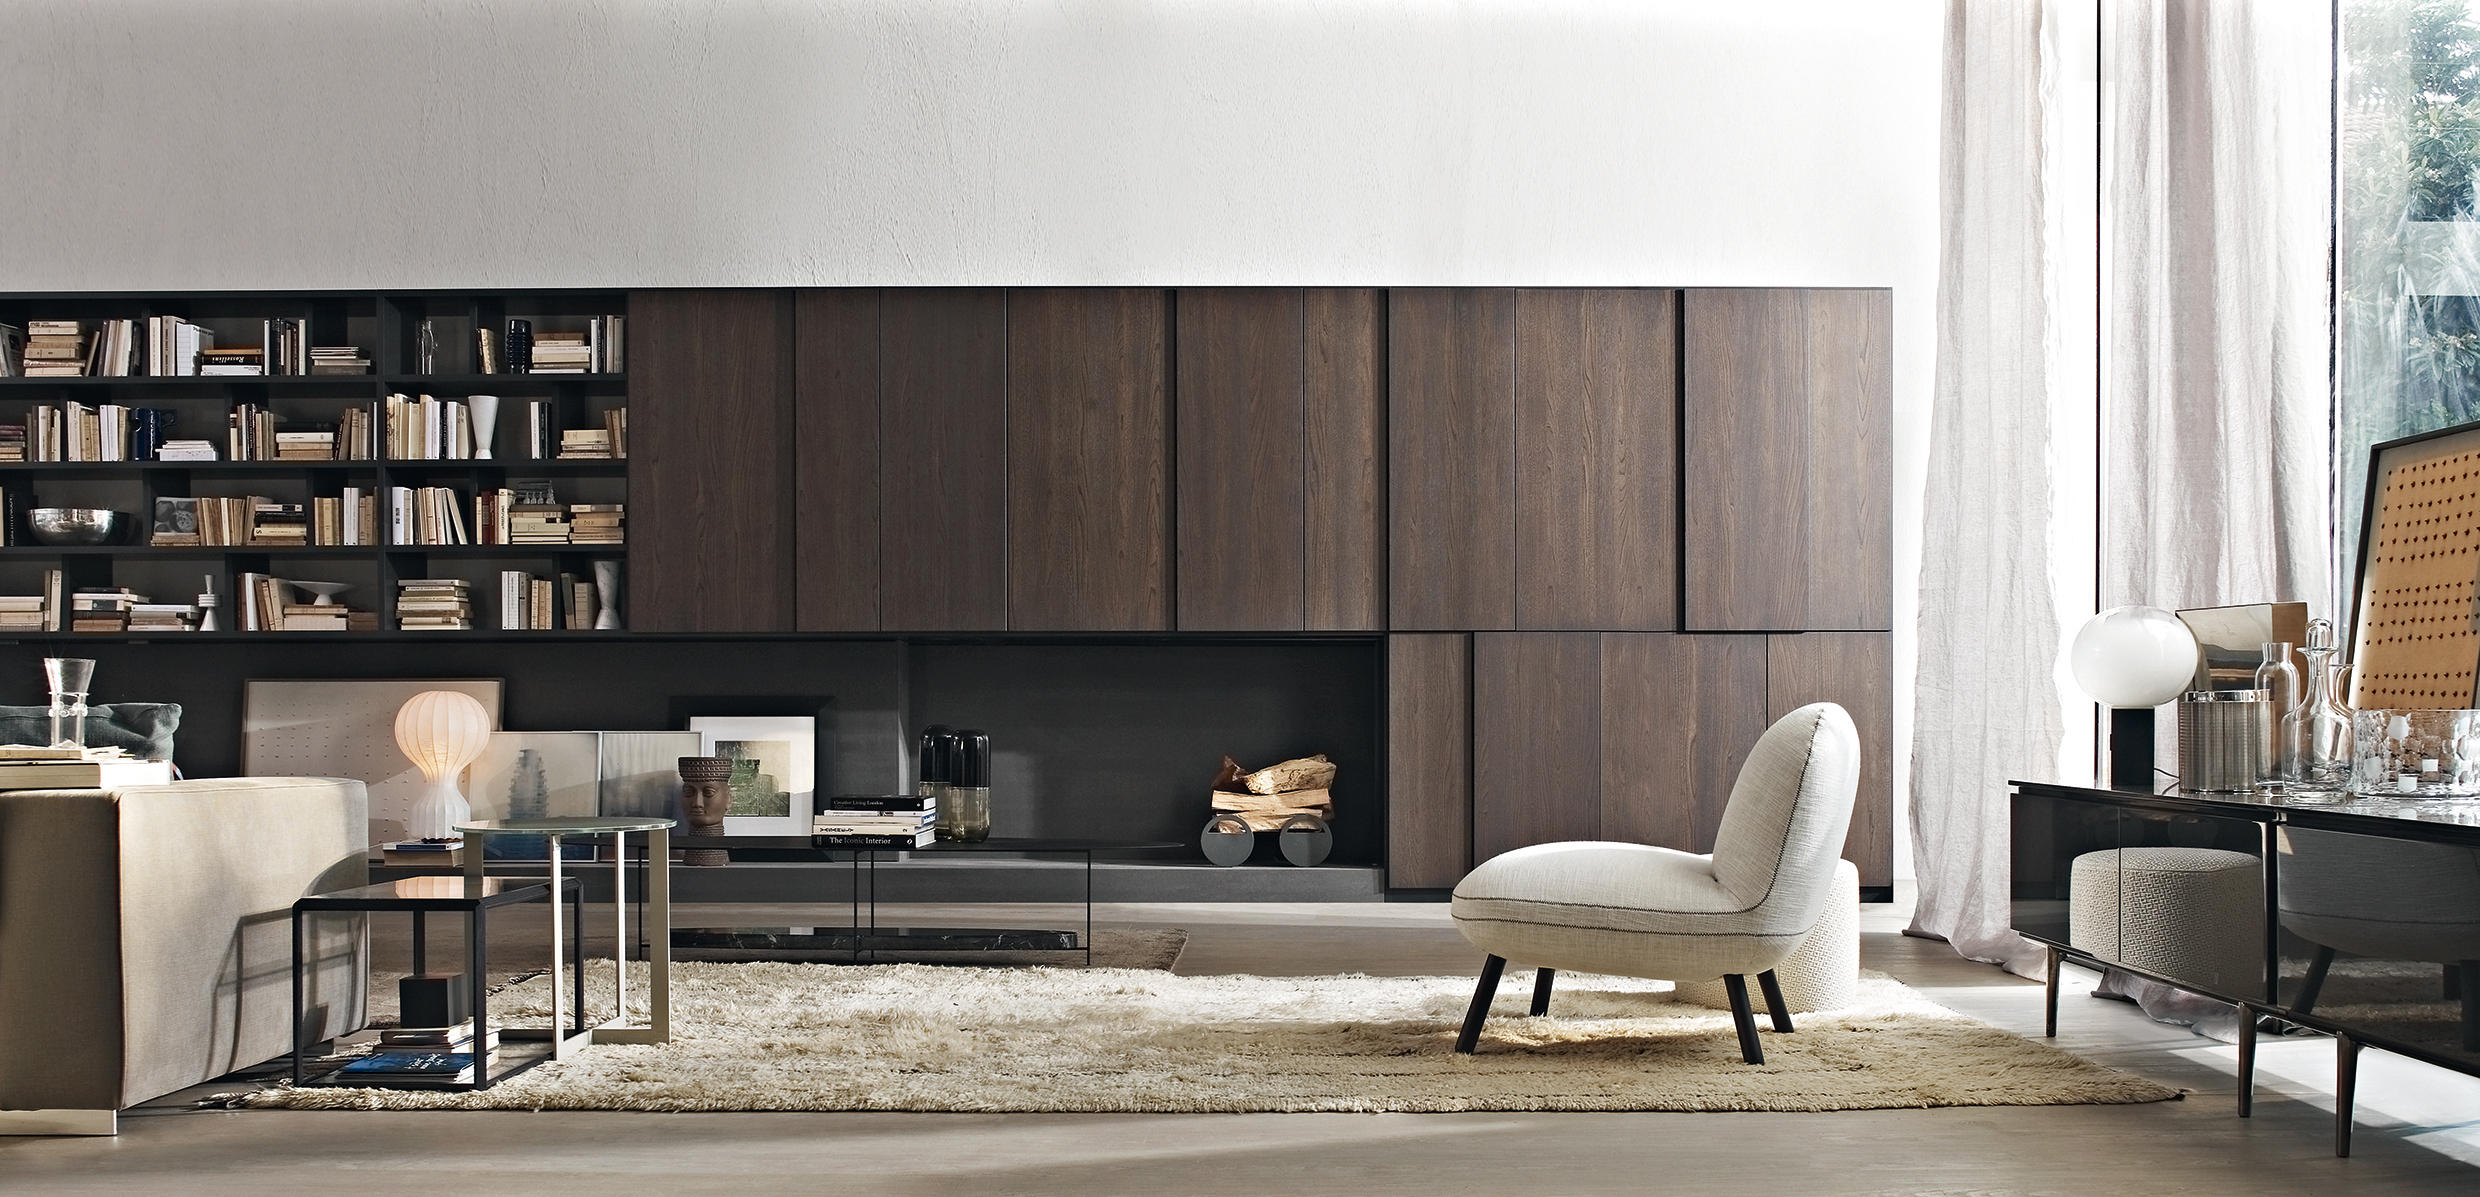 505 sideboard sideboards from molteni c architonic. Black Bedroom Furniture Sets. Home Design Ideas